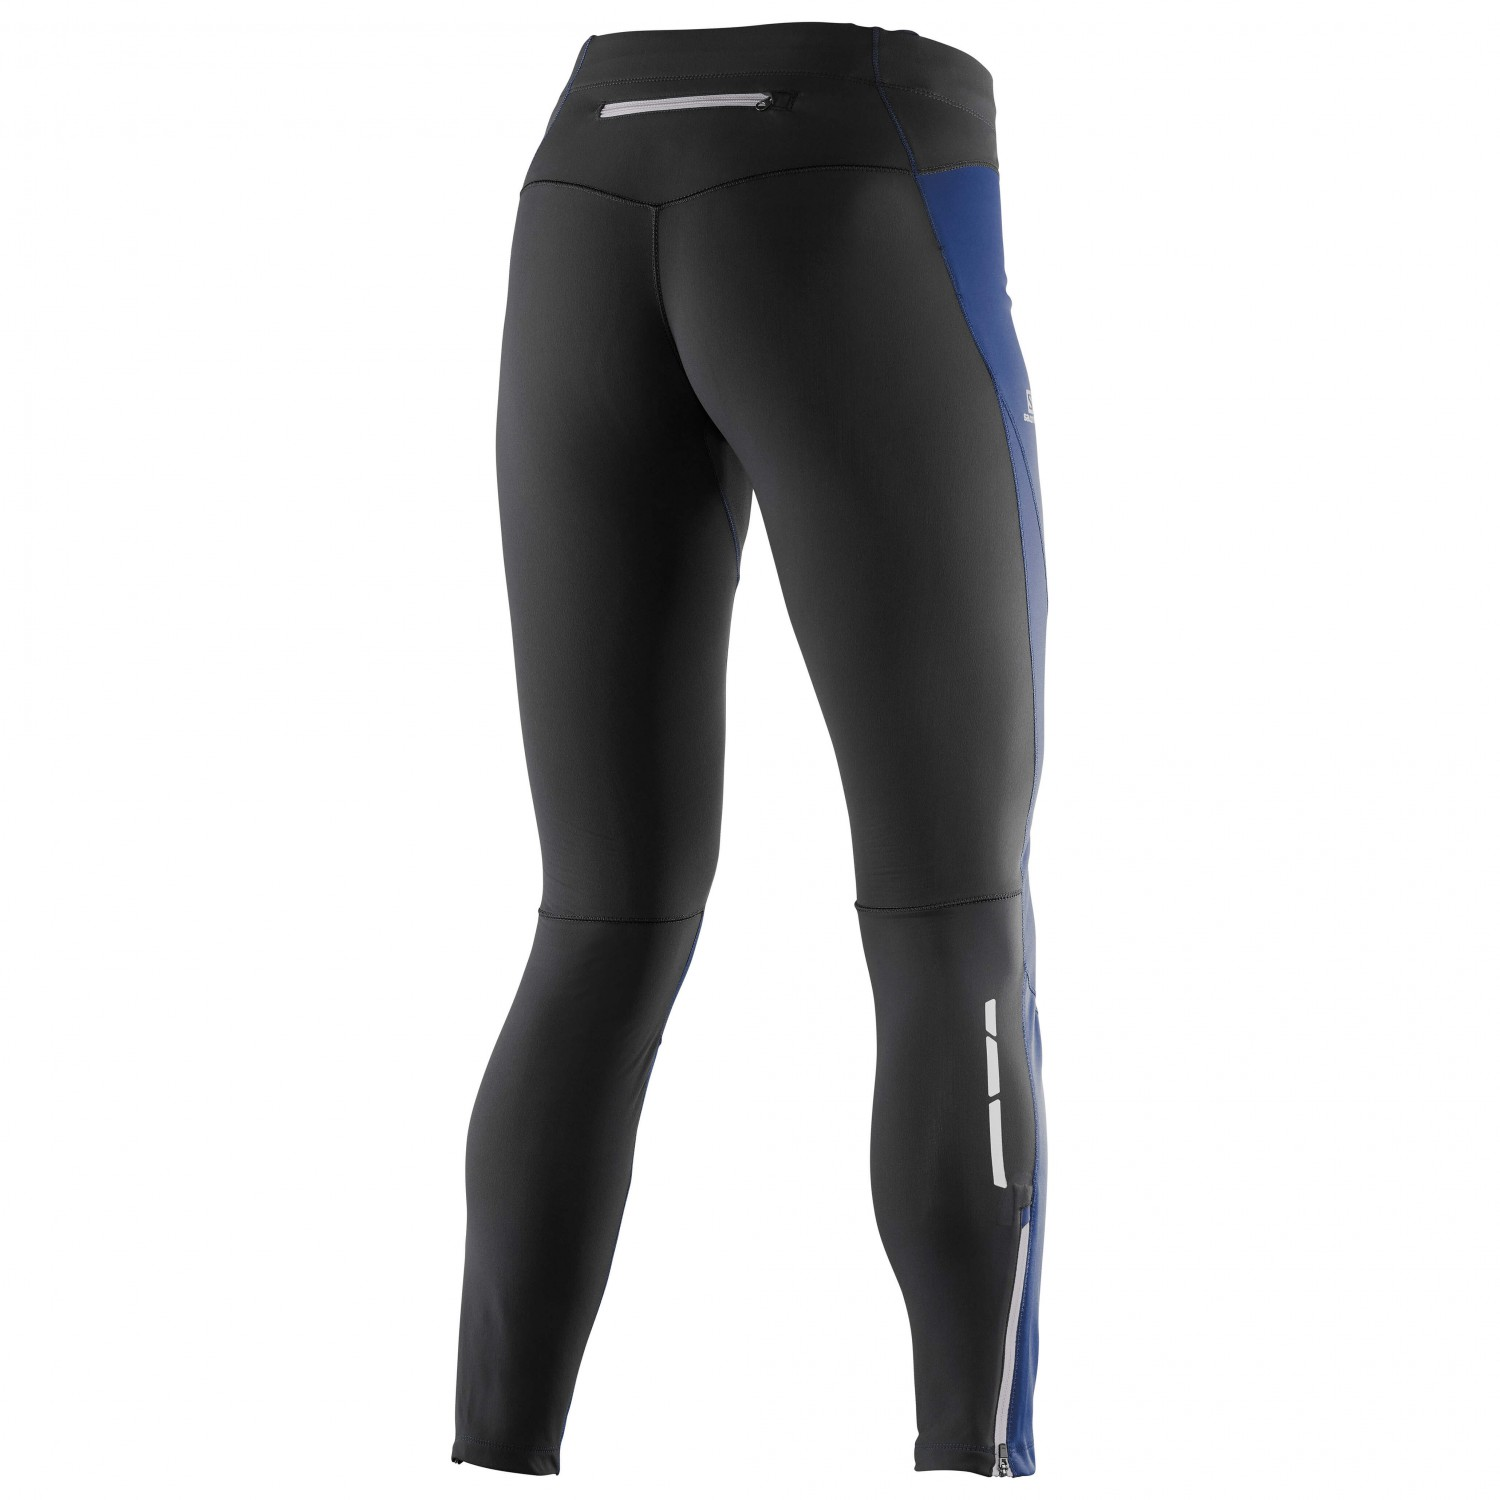 85c1374d13 pantalon salomon trail runner ws tight women